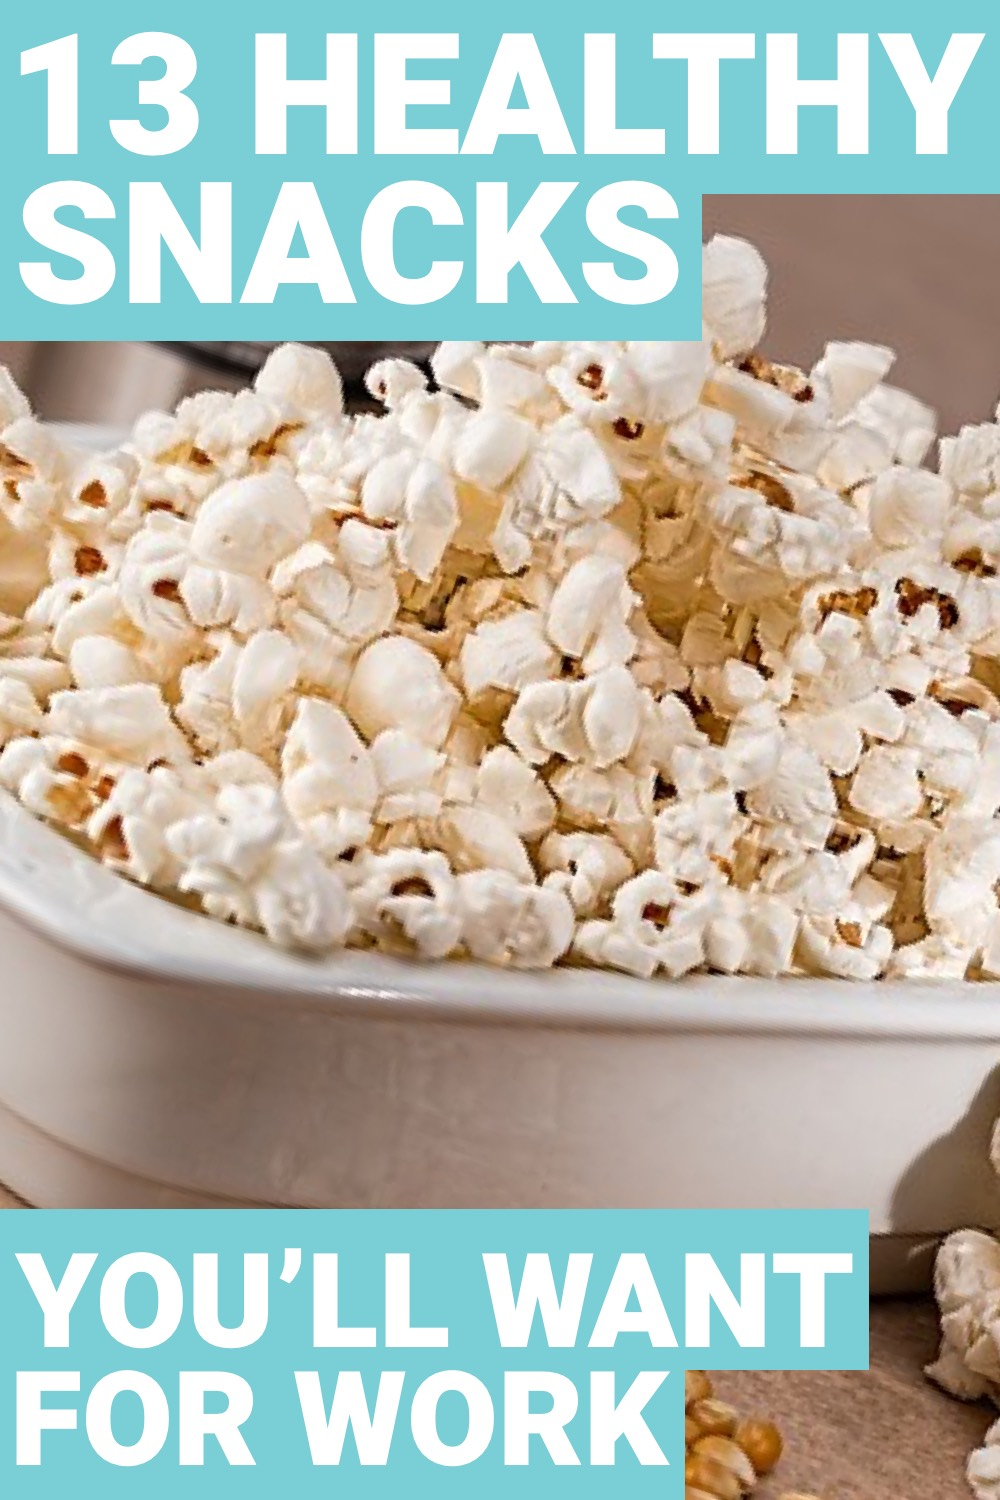 The workday can be long and daunting, especially when you want a snack. Here are 13 healthy snacks for work.